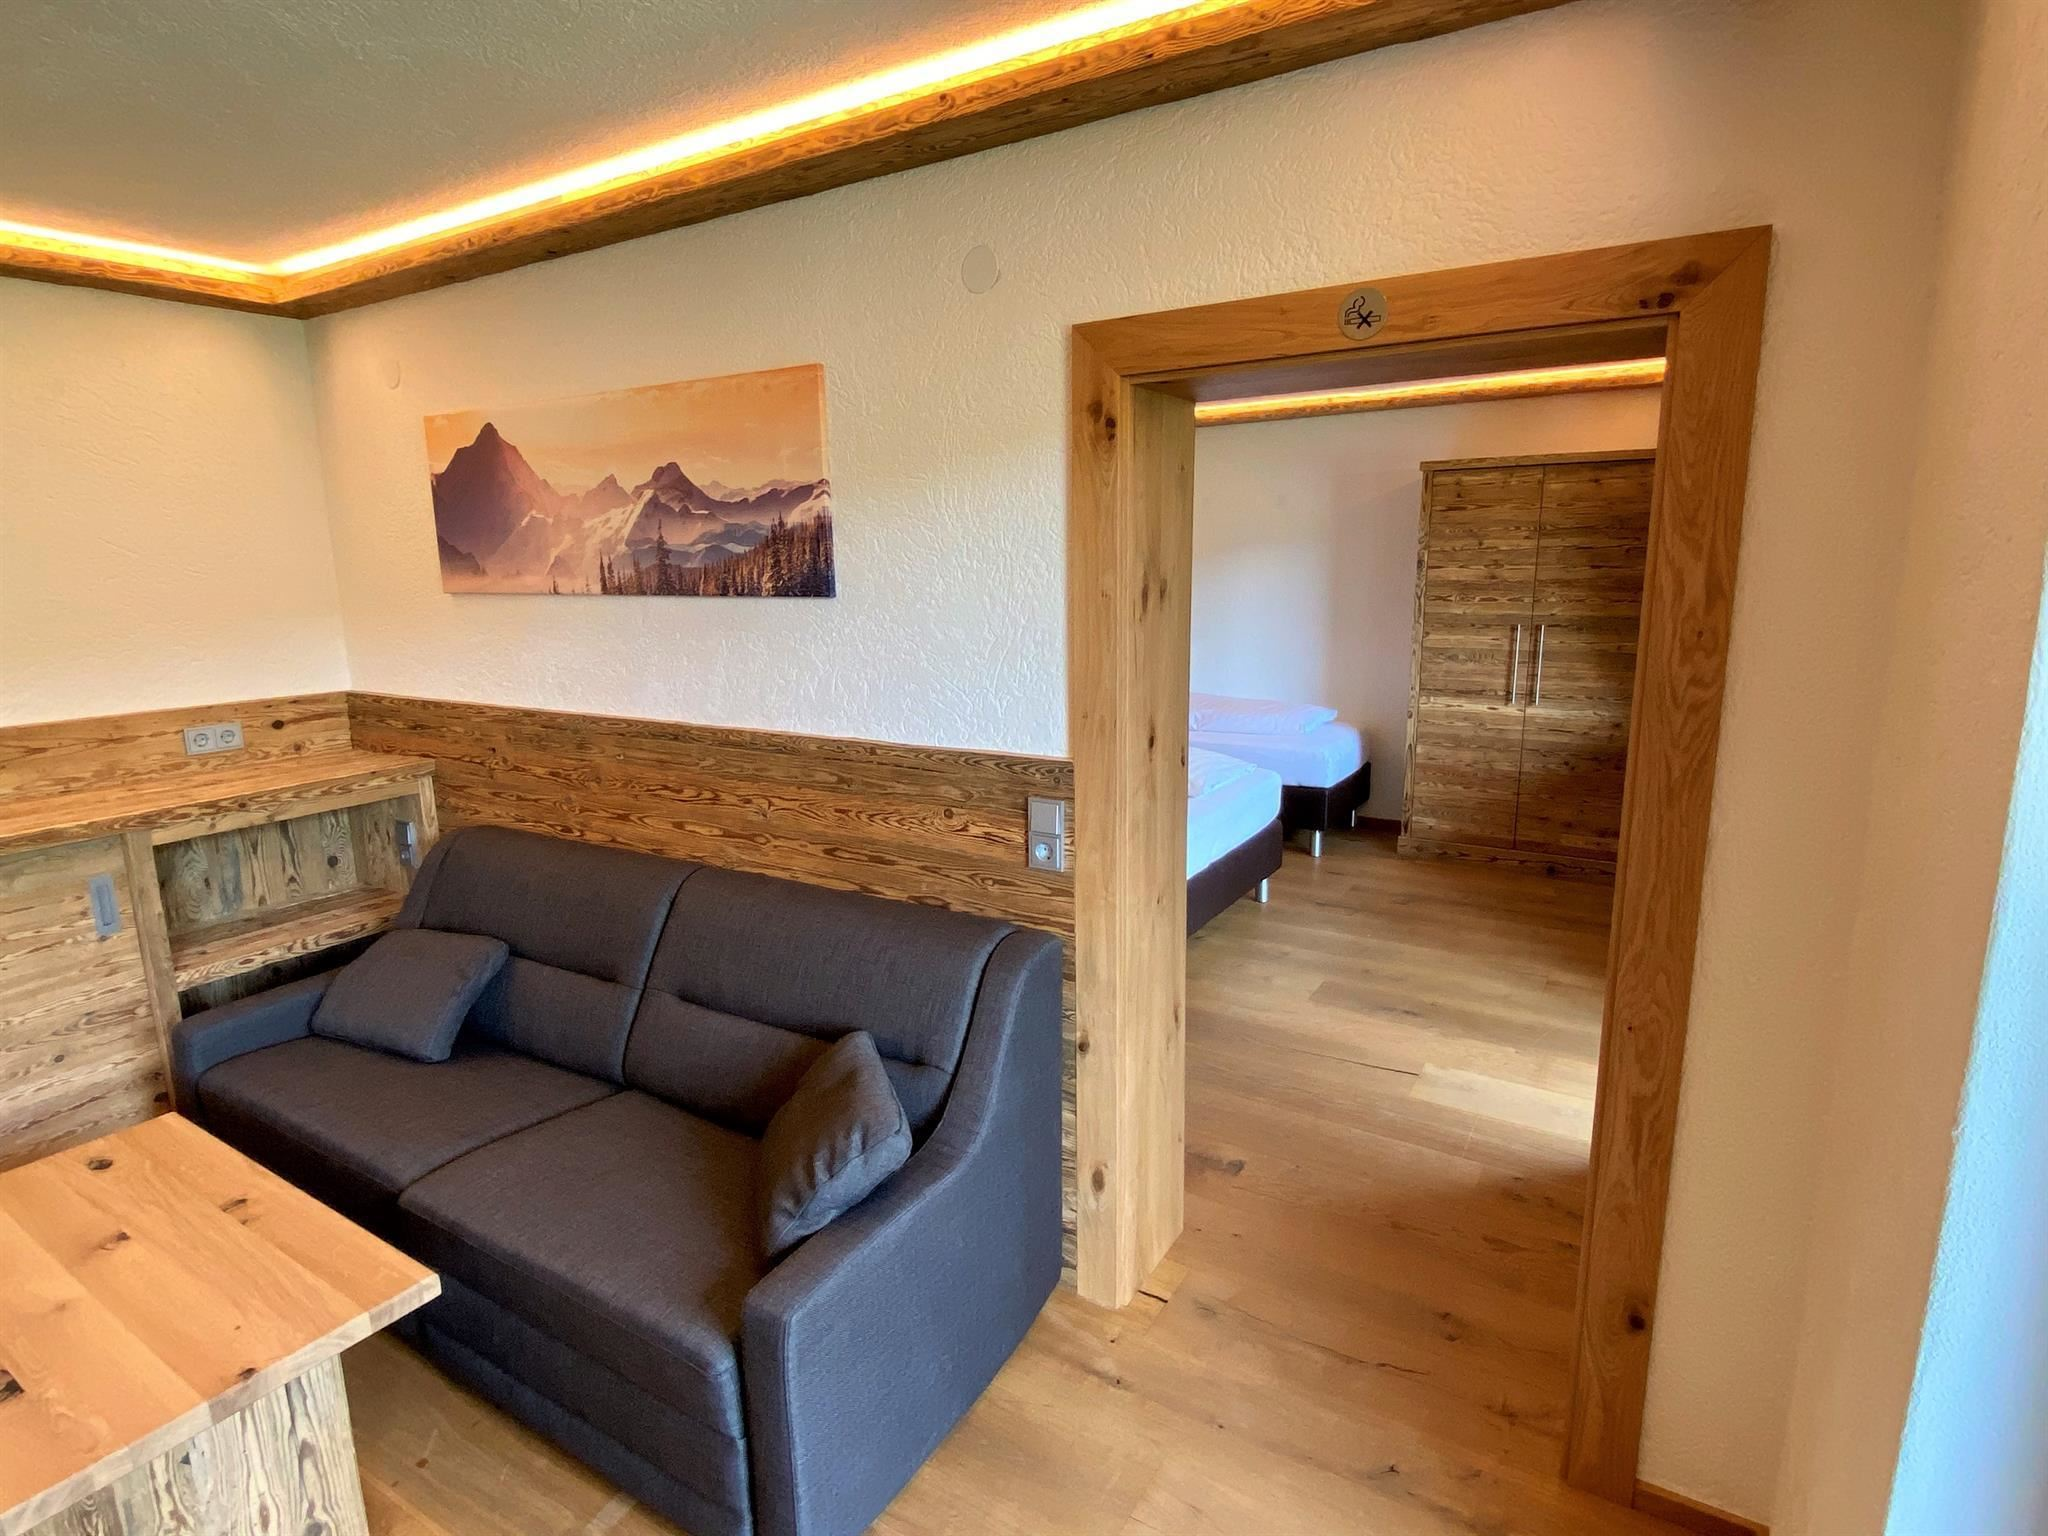 Picture of: Almhof Kitzlodge Alpine Lifestyle Hotel Prices Availability